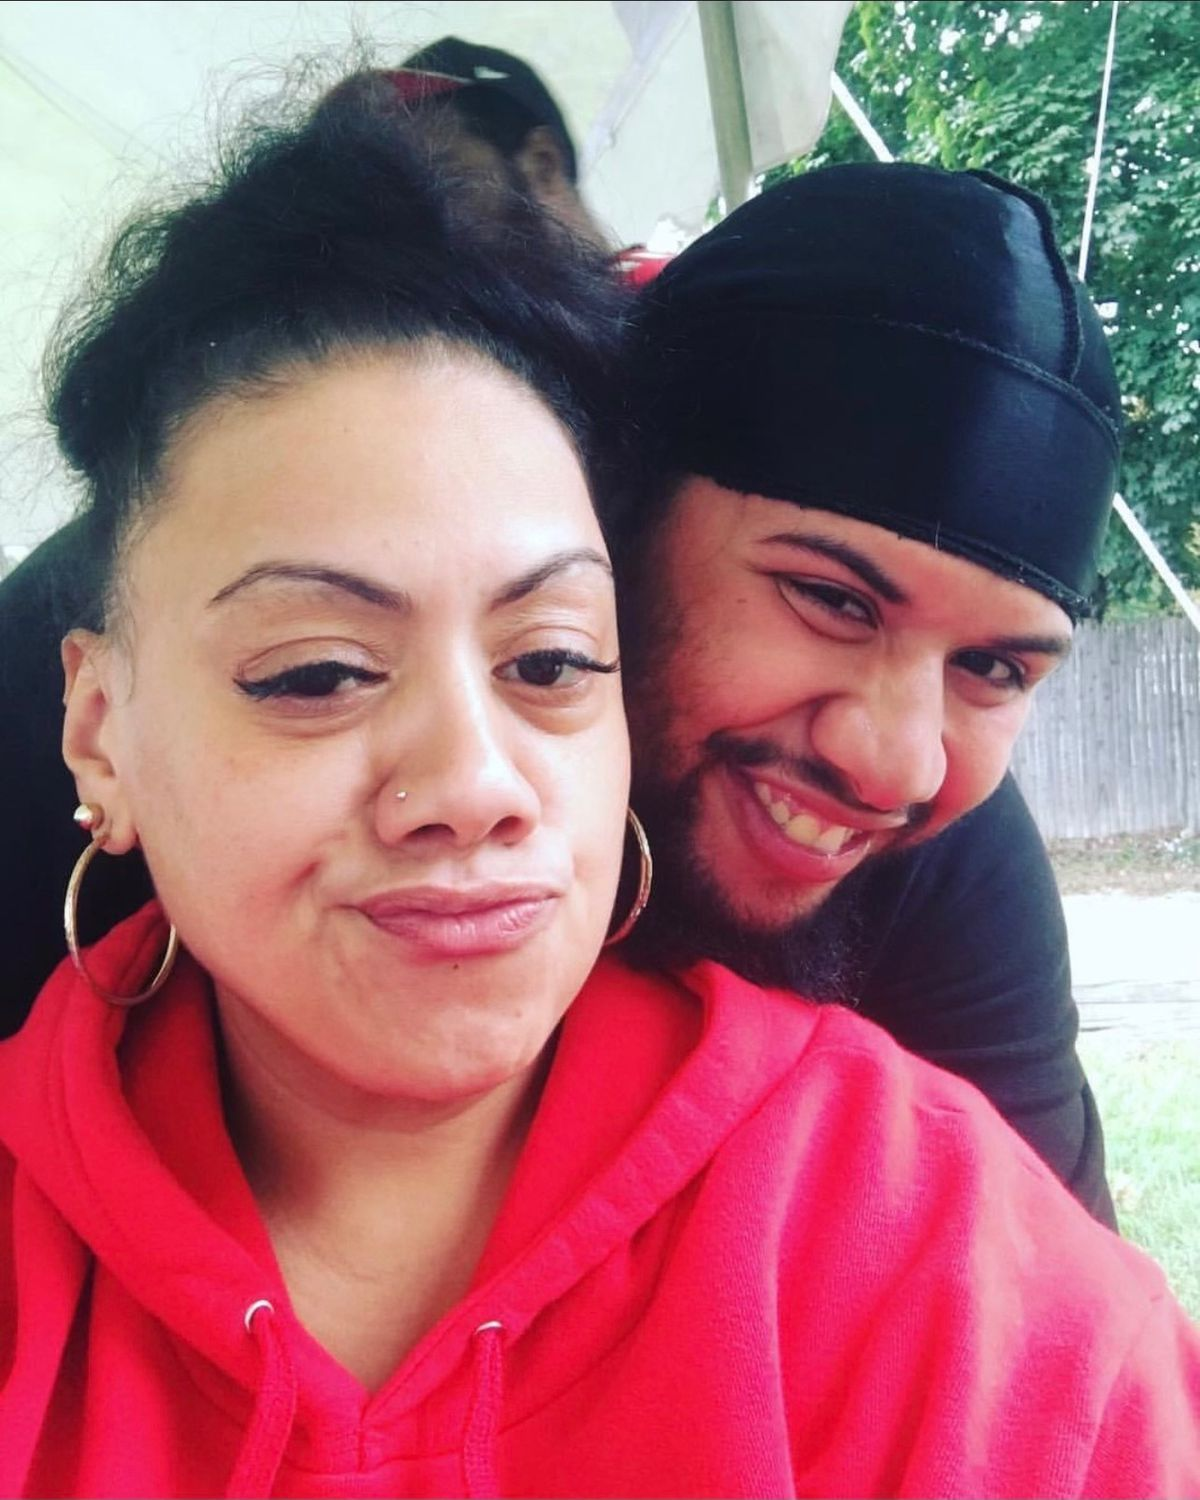 Brandon Rodriguez, 25, with his mother Tamara Carter. Rodriguez was found dead inside a Rikers Island intake cell on Aug. 10.